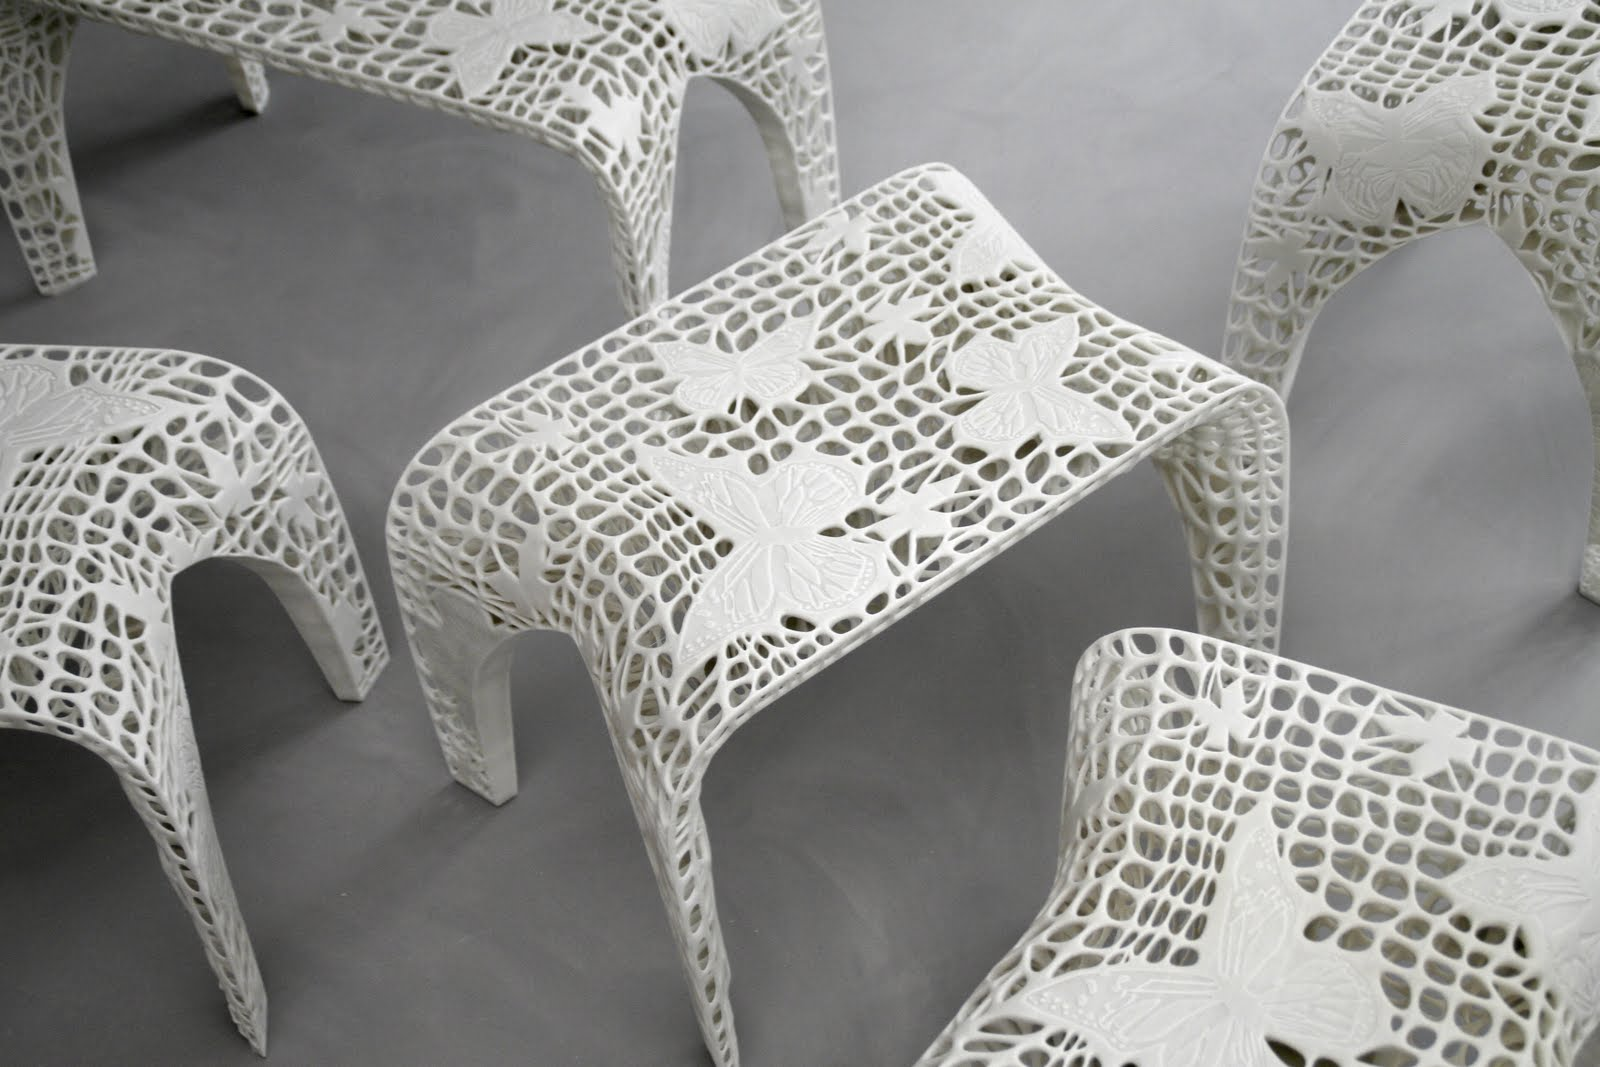 3D Printed Furniture- A Revolution In The Design Technology